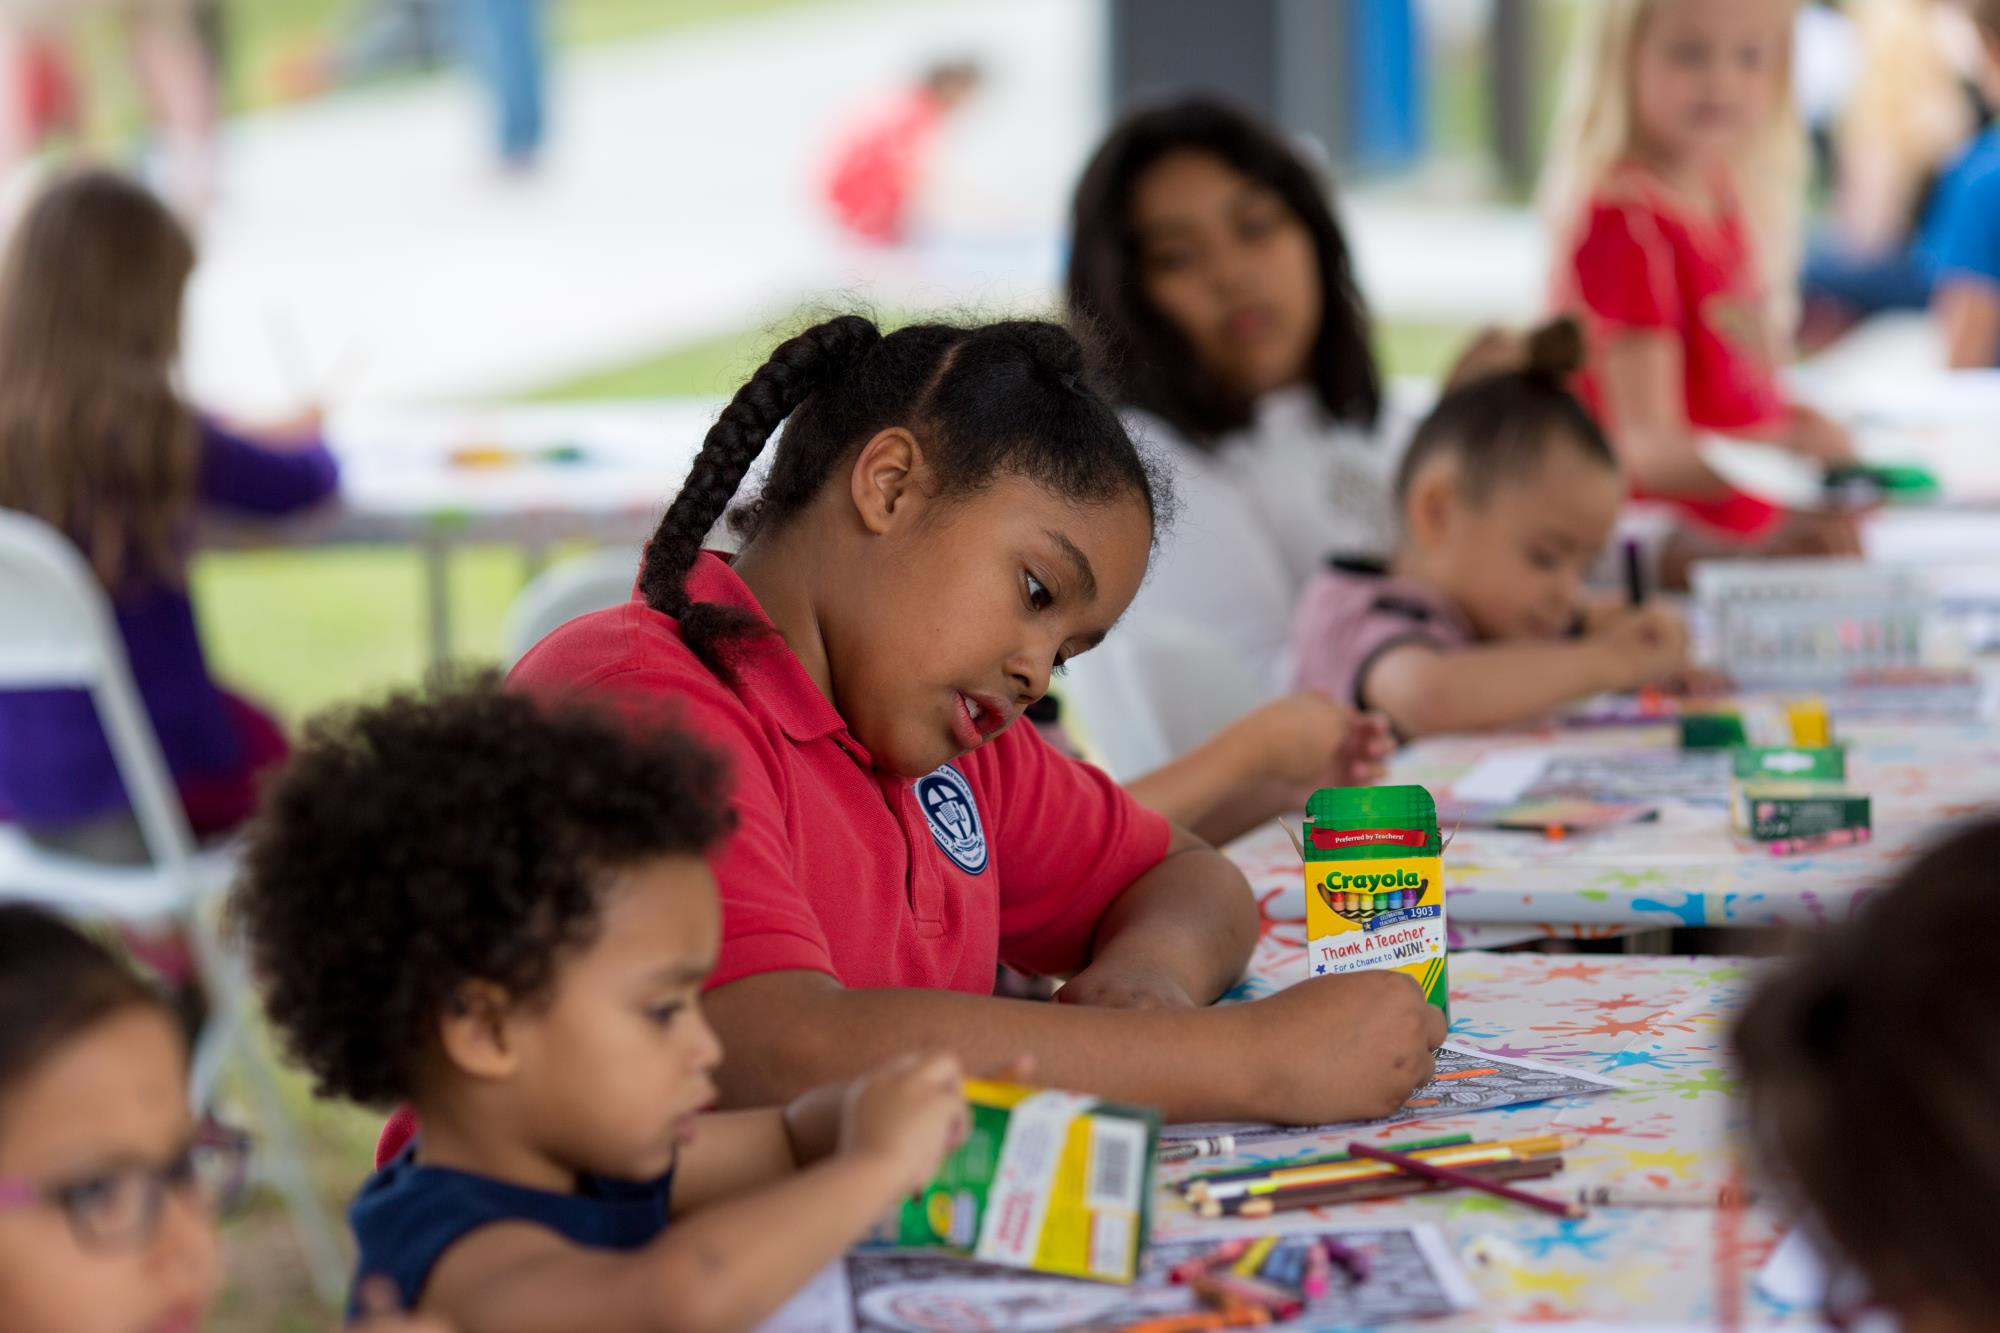 A group of children color at an art booth